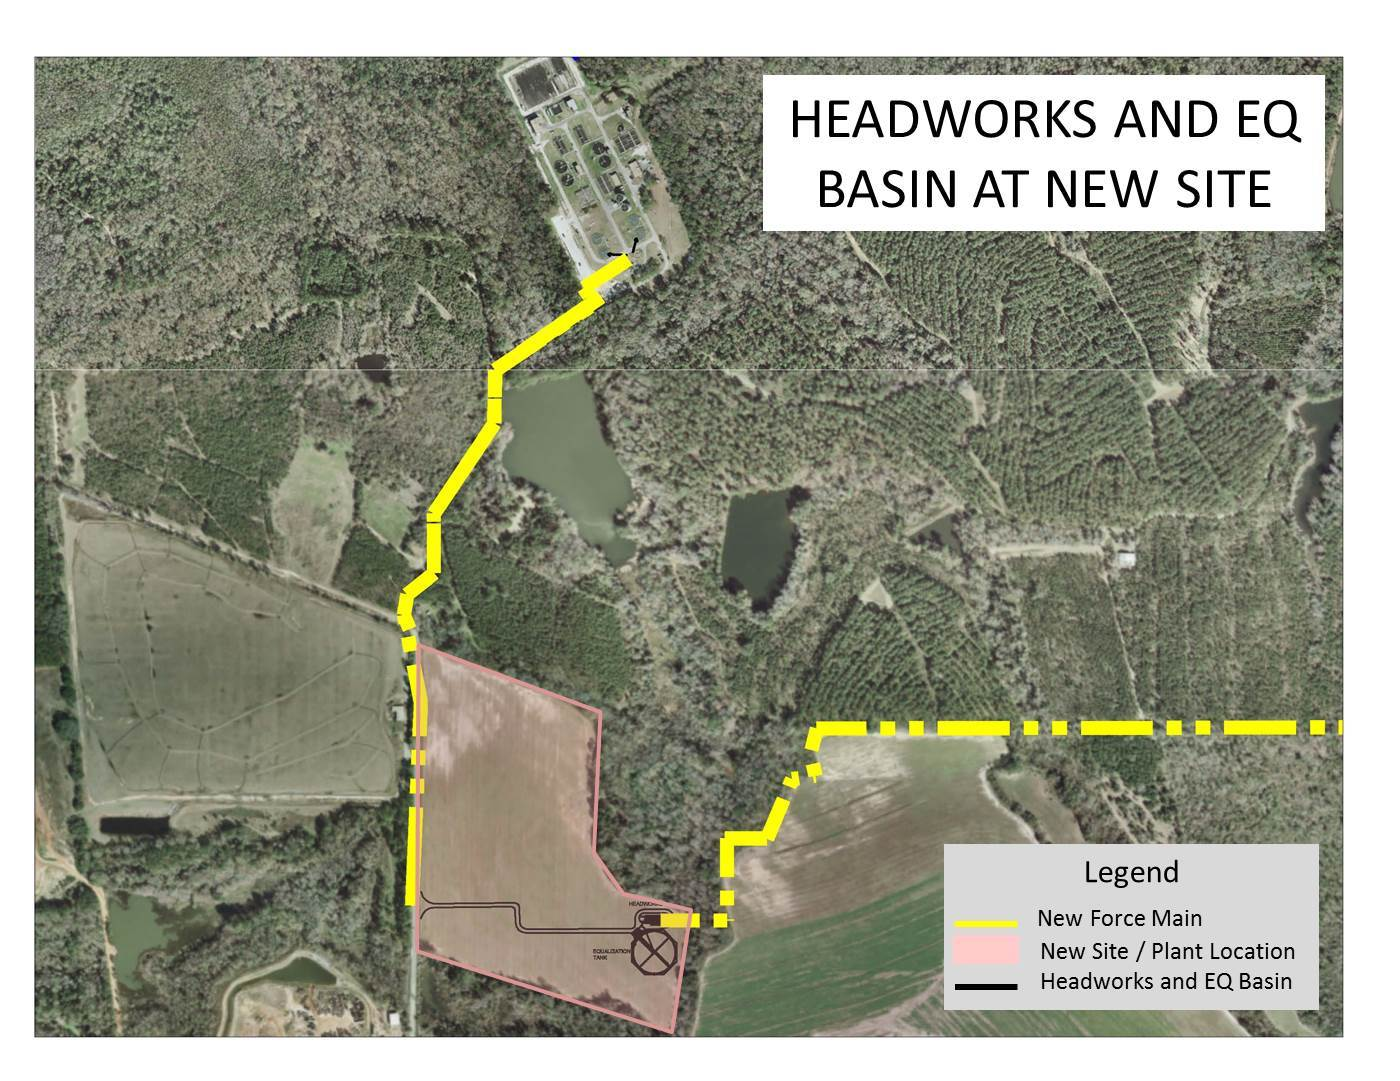 1400x1081 Map, in Headworks and EQ Basin at New Site, by Valdosta Utilities, 8 June 2016